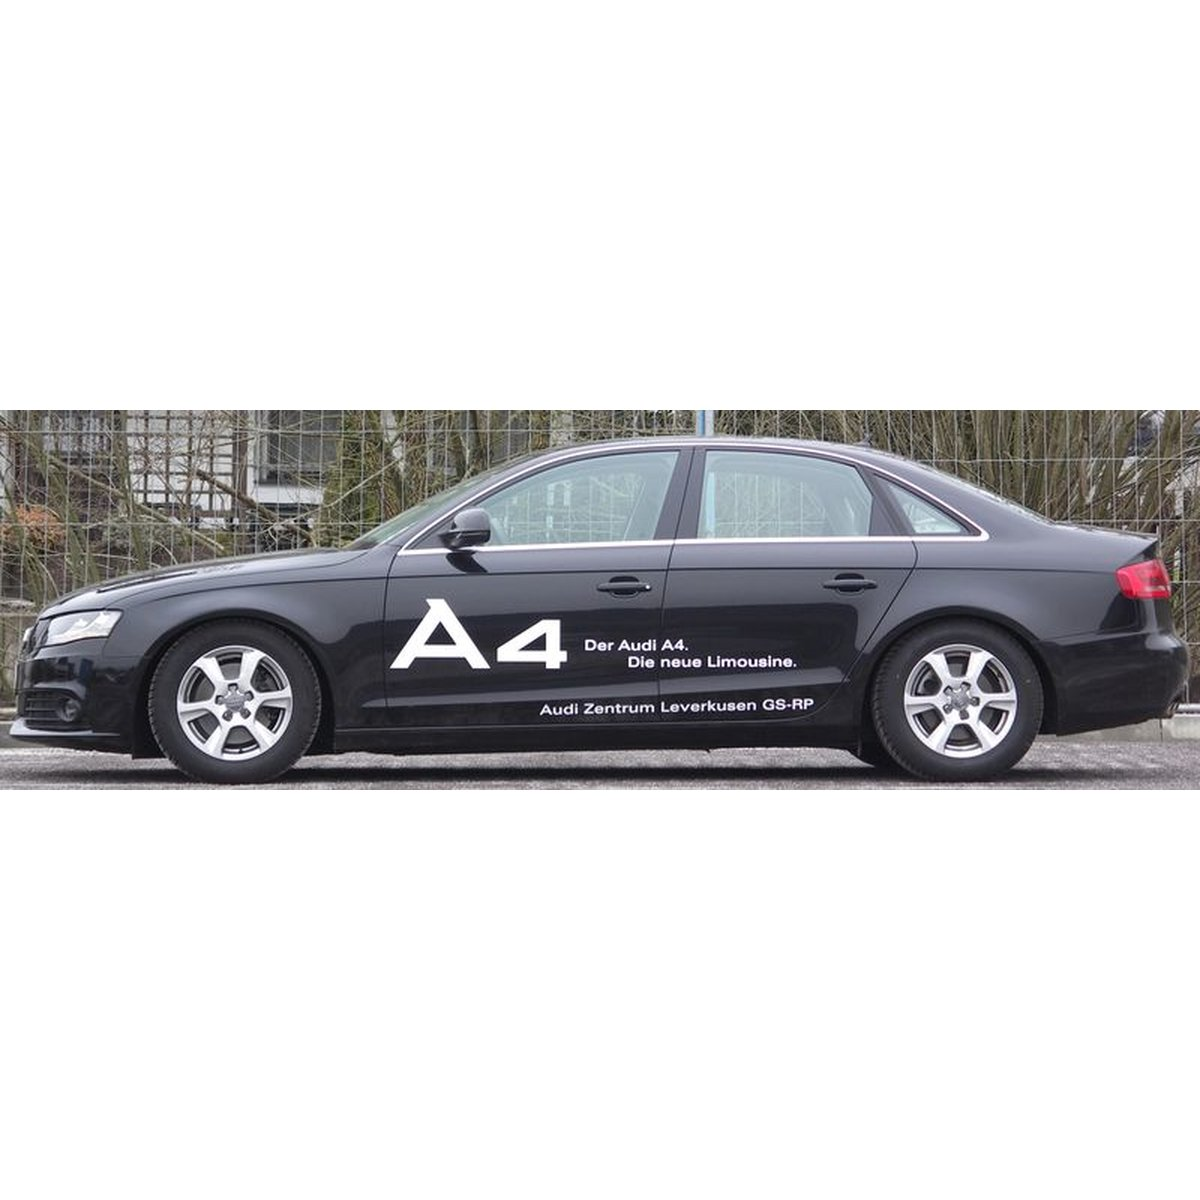 h r gewindefahrwerk monotube audi a4 avant b9 15 klemmung 53mm. Black Bedroom Furniture Sets. Home Design Ideas